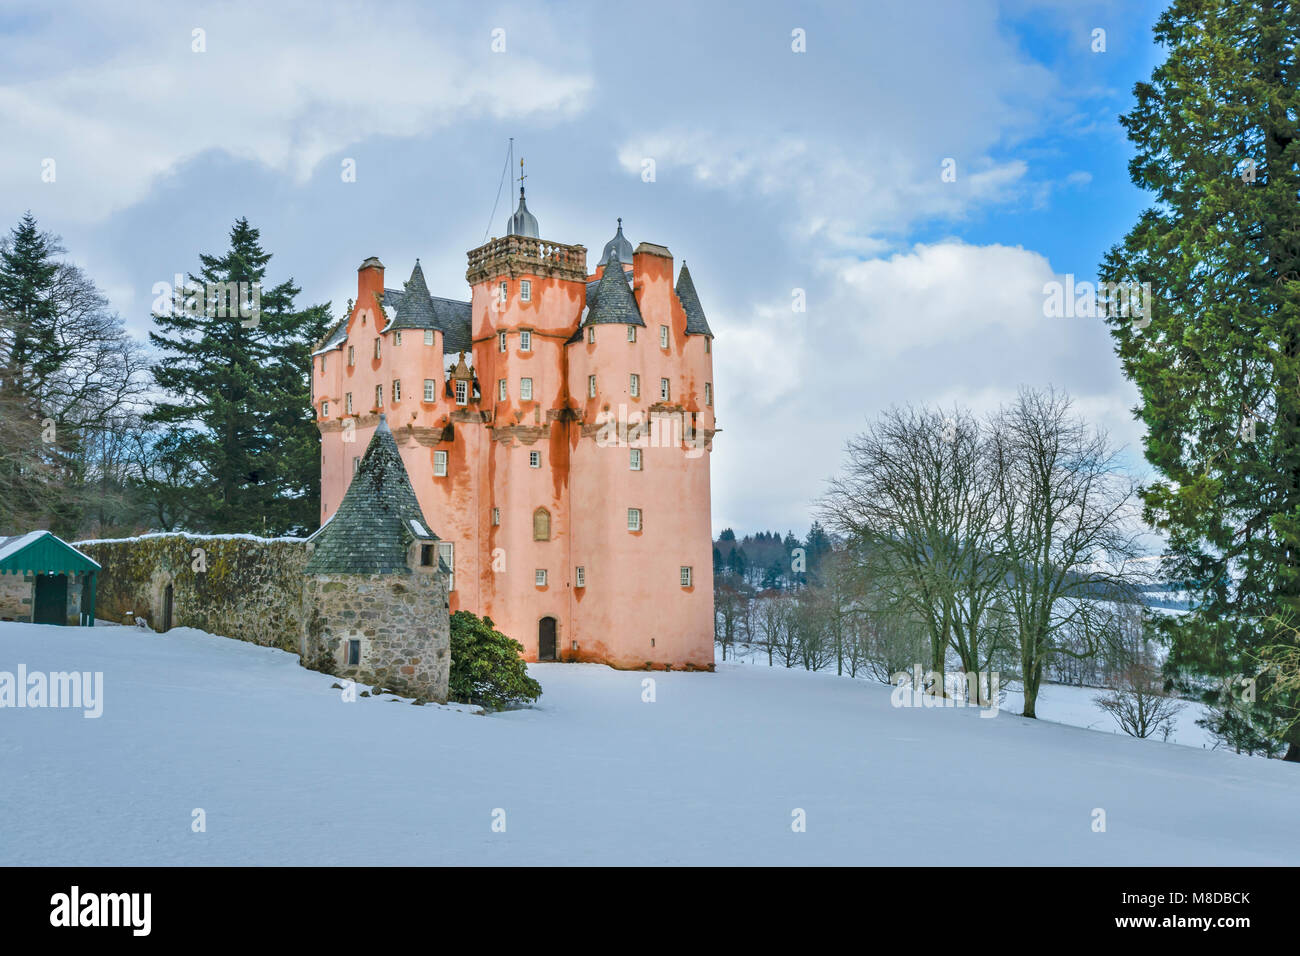 CRAIGIEVAR CASTLE ABERDEENSHIRE SCOTLAND THE TOWER SURROUNDED BY WINTER SNOW  AND EVERGREEN PINE TREES - Stock Image